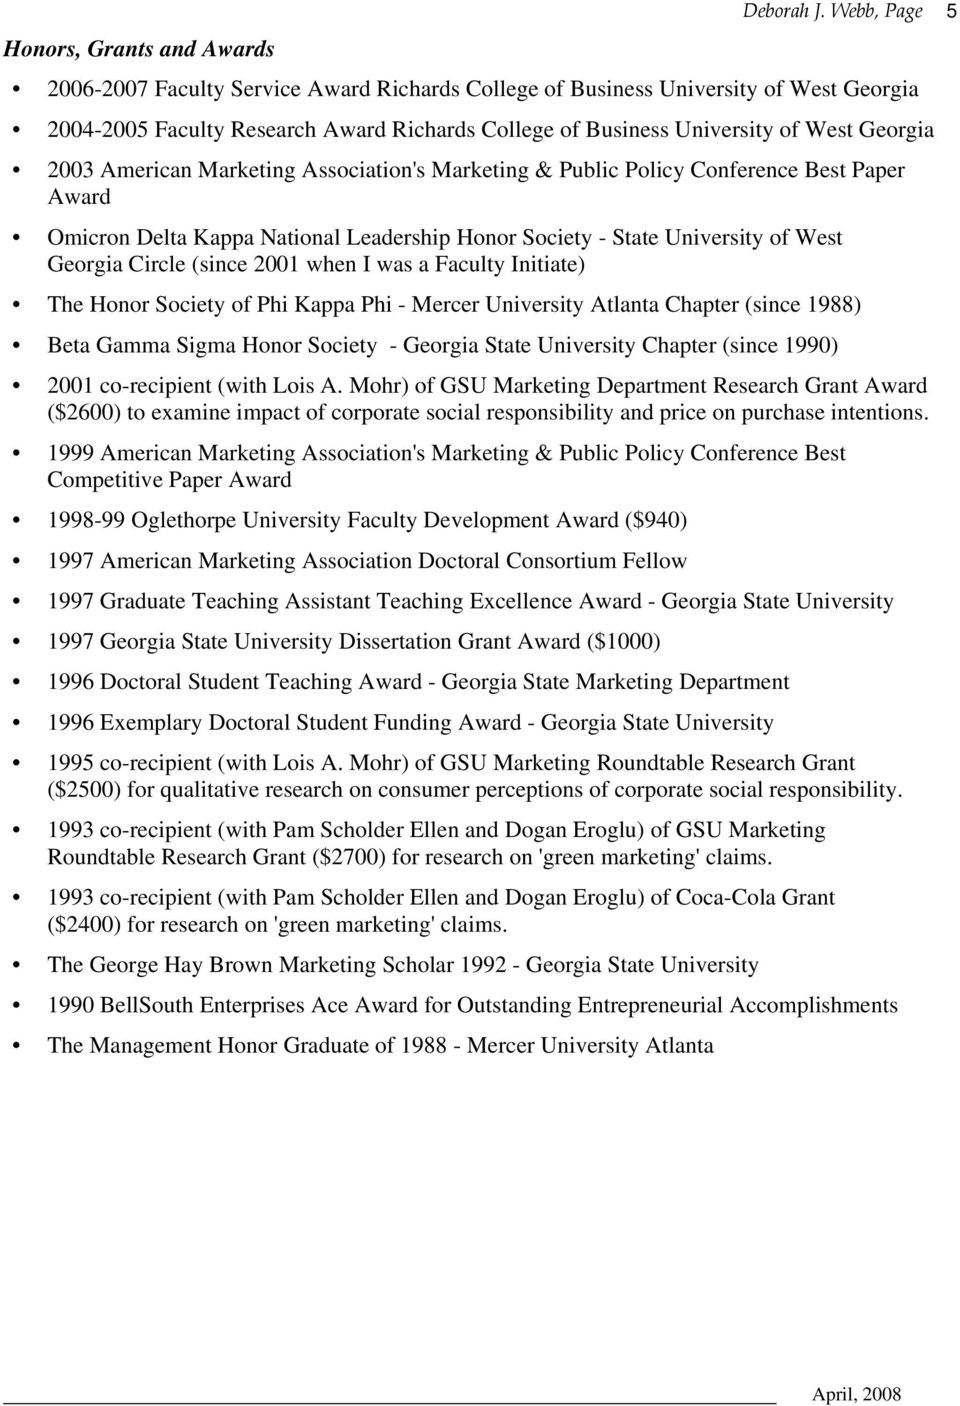 (since 2001 when I was a Faculty Initiate) The Honor Society of Phi Kappa Phi - Mercer University Atlanta Chapter (since 1988) Beta Gamma Sigma Honor Society - Georgia State University Chapter (since